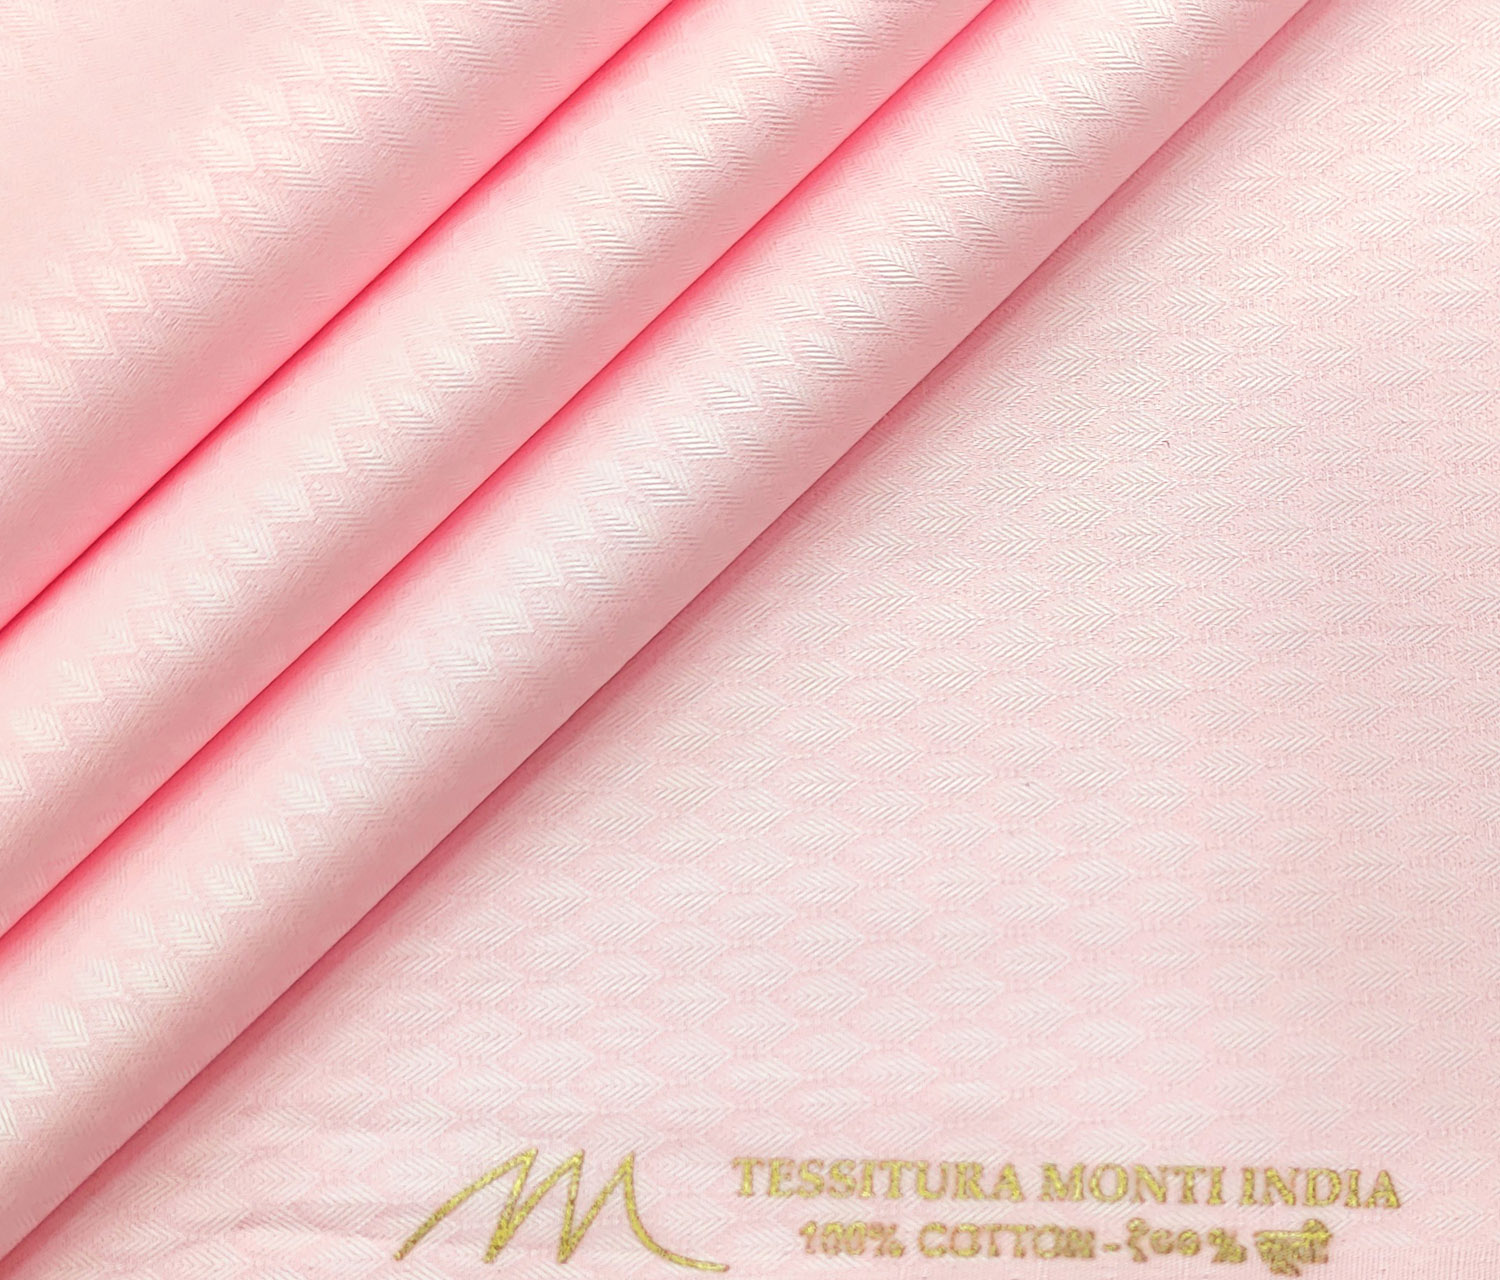 Tessitura Monti Men's Giza Cotton Structured 2 Meter Unstitched Shirting Fabric (Pink)